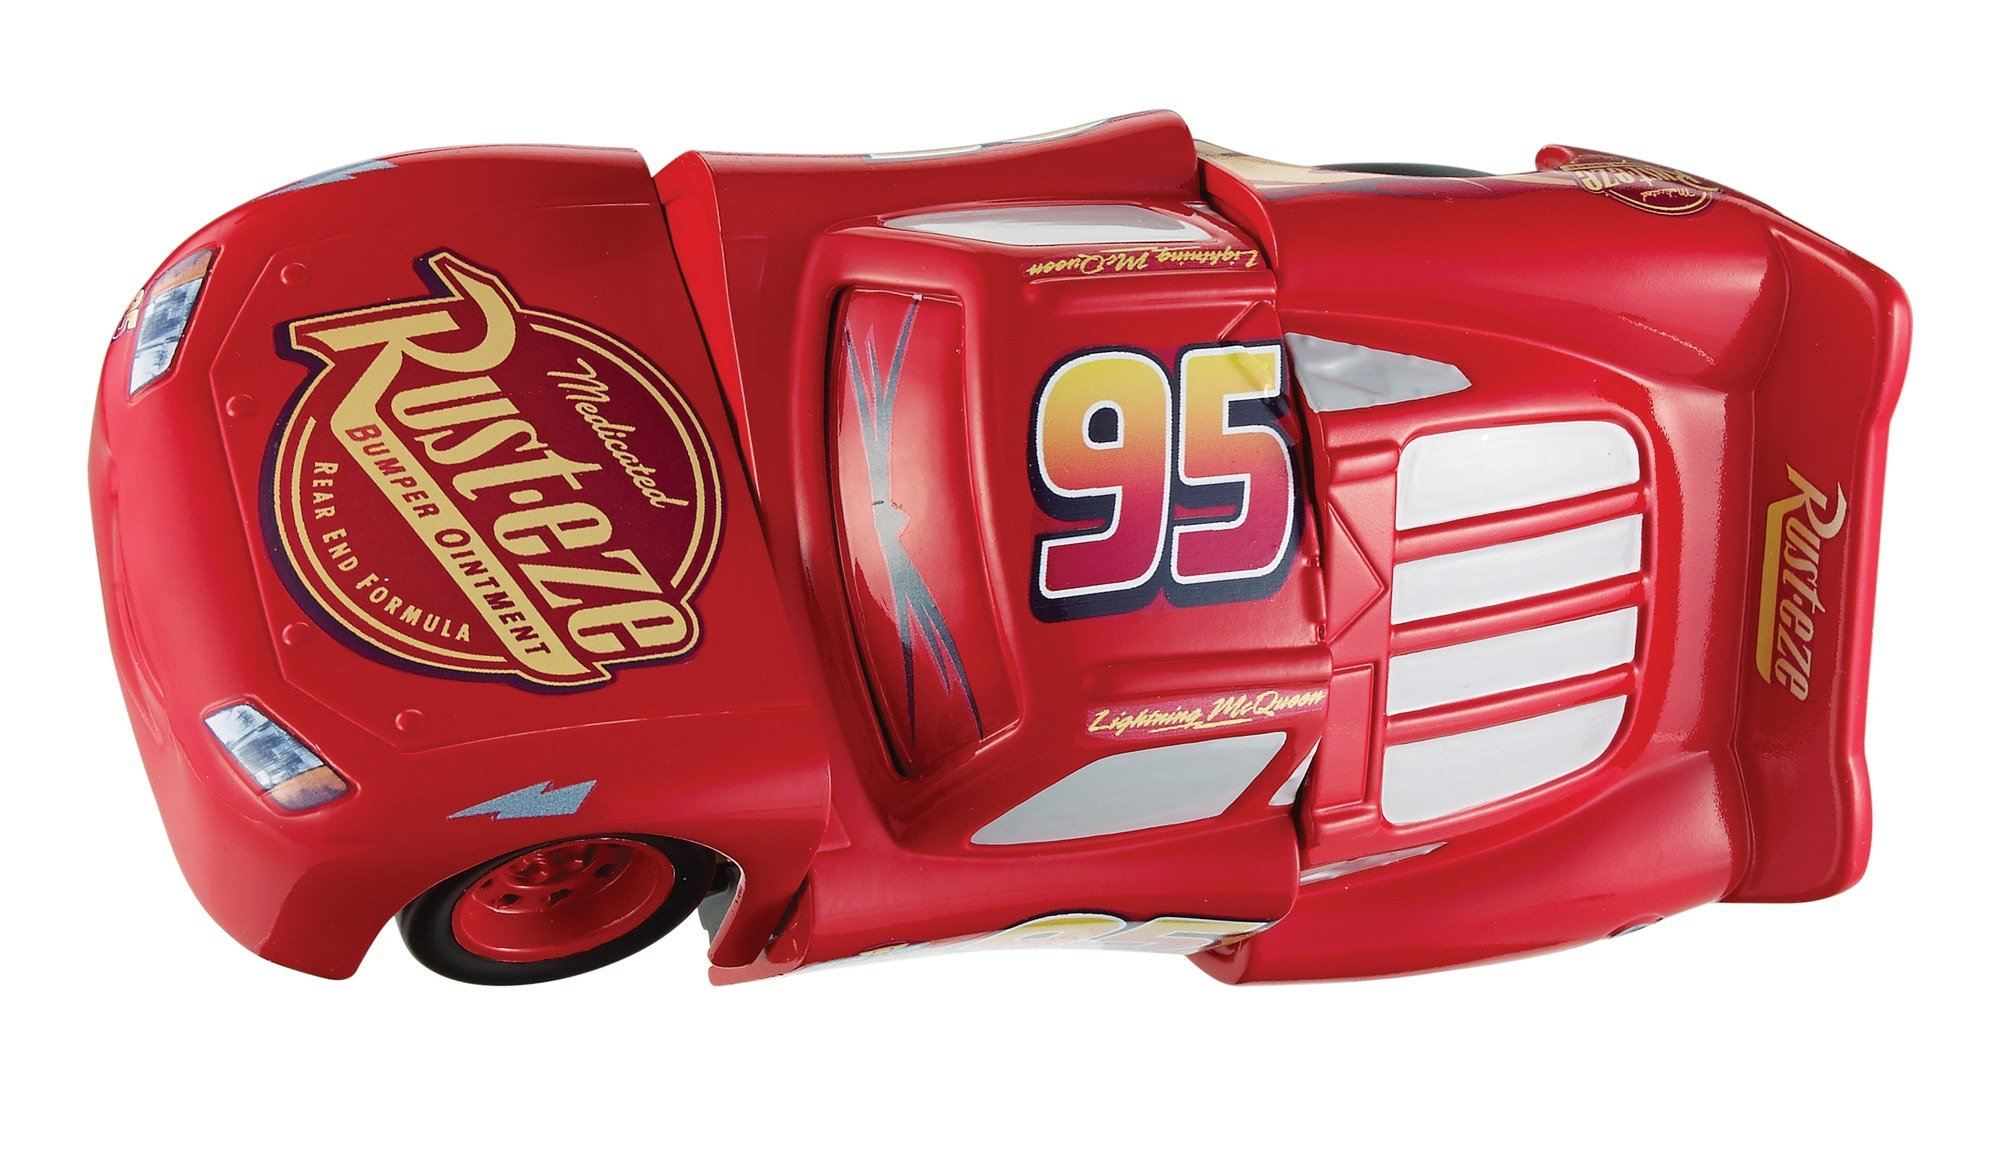 Disney DYW39 Pixar Cars 3 Race and Reck Lightning McQueen Vehicle Disney New Disney Pixar Cars 3 Twisted Crashers vehicle.  His body twists and his eyes change after the crash!  Restore him to his former; pre smash glory by simply twisting the car back into place! 12